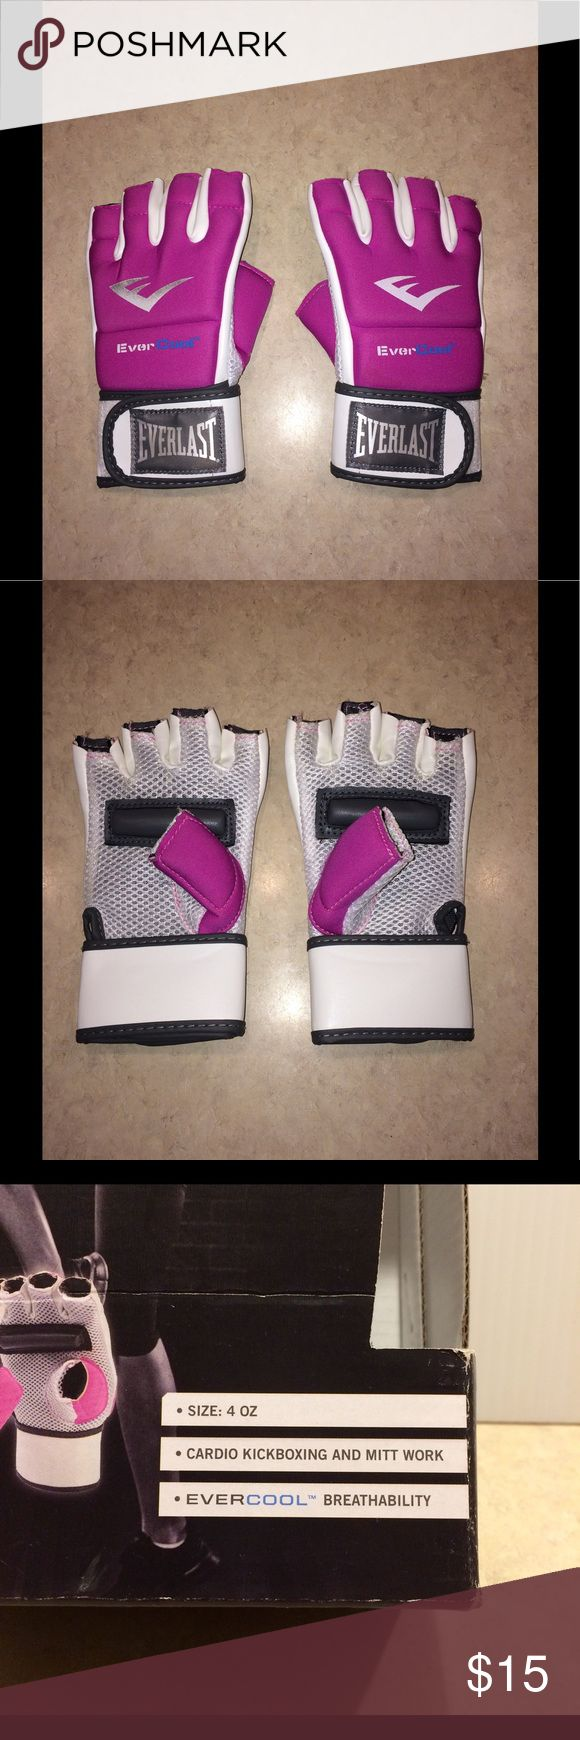 Everlast Women's Kickboxing Gloves Everlast  Women's Evercool Kickboxing  Gloves.   Size 4oz.    Brand new/never been used.  Box is ripped (See picture 4).  Comes from smoke free home. Everlast Other